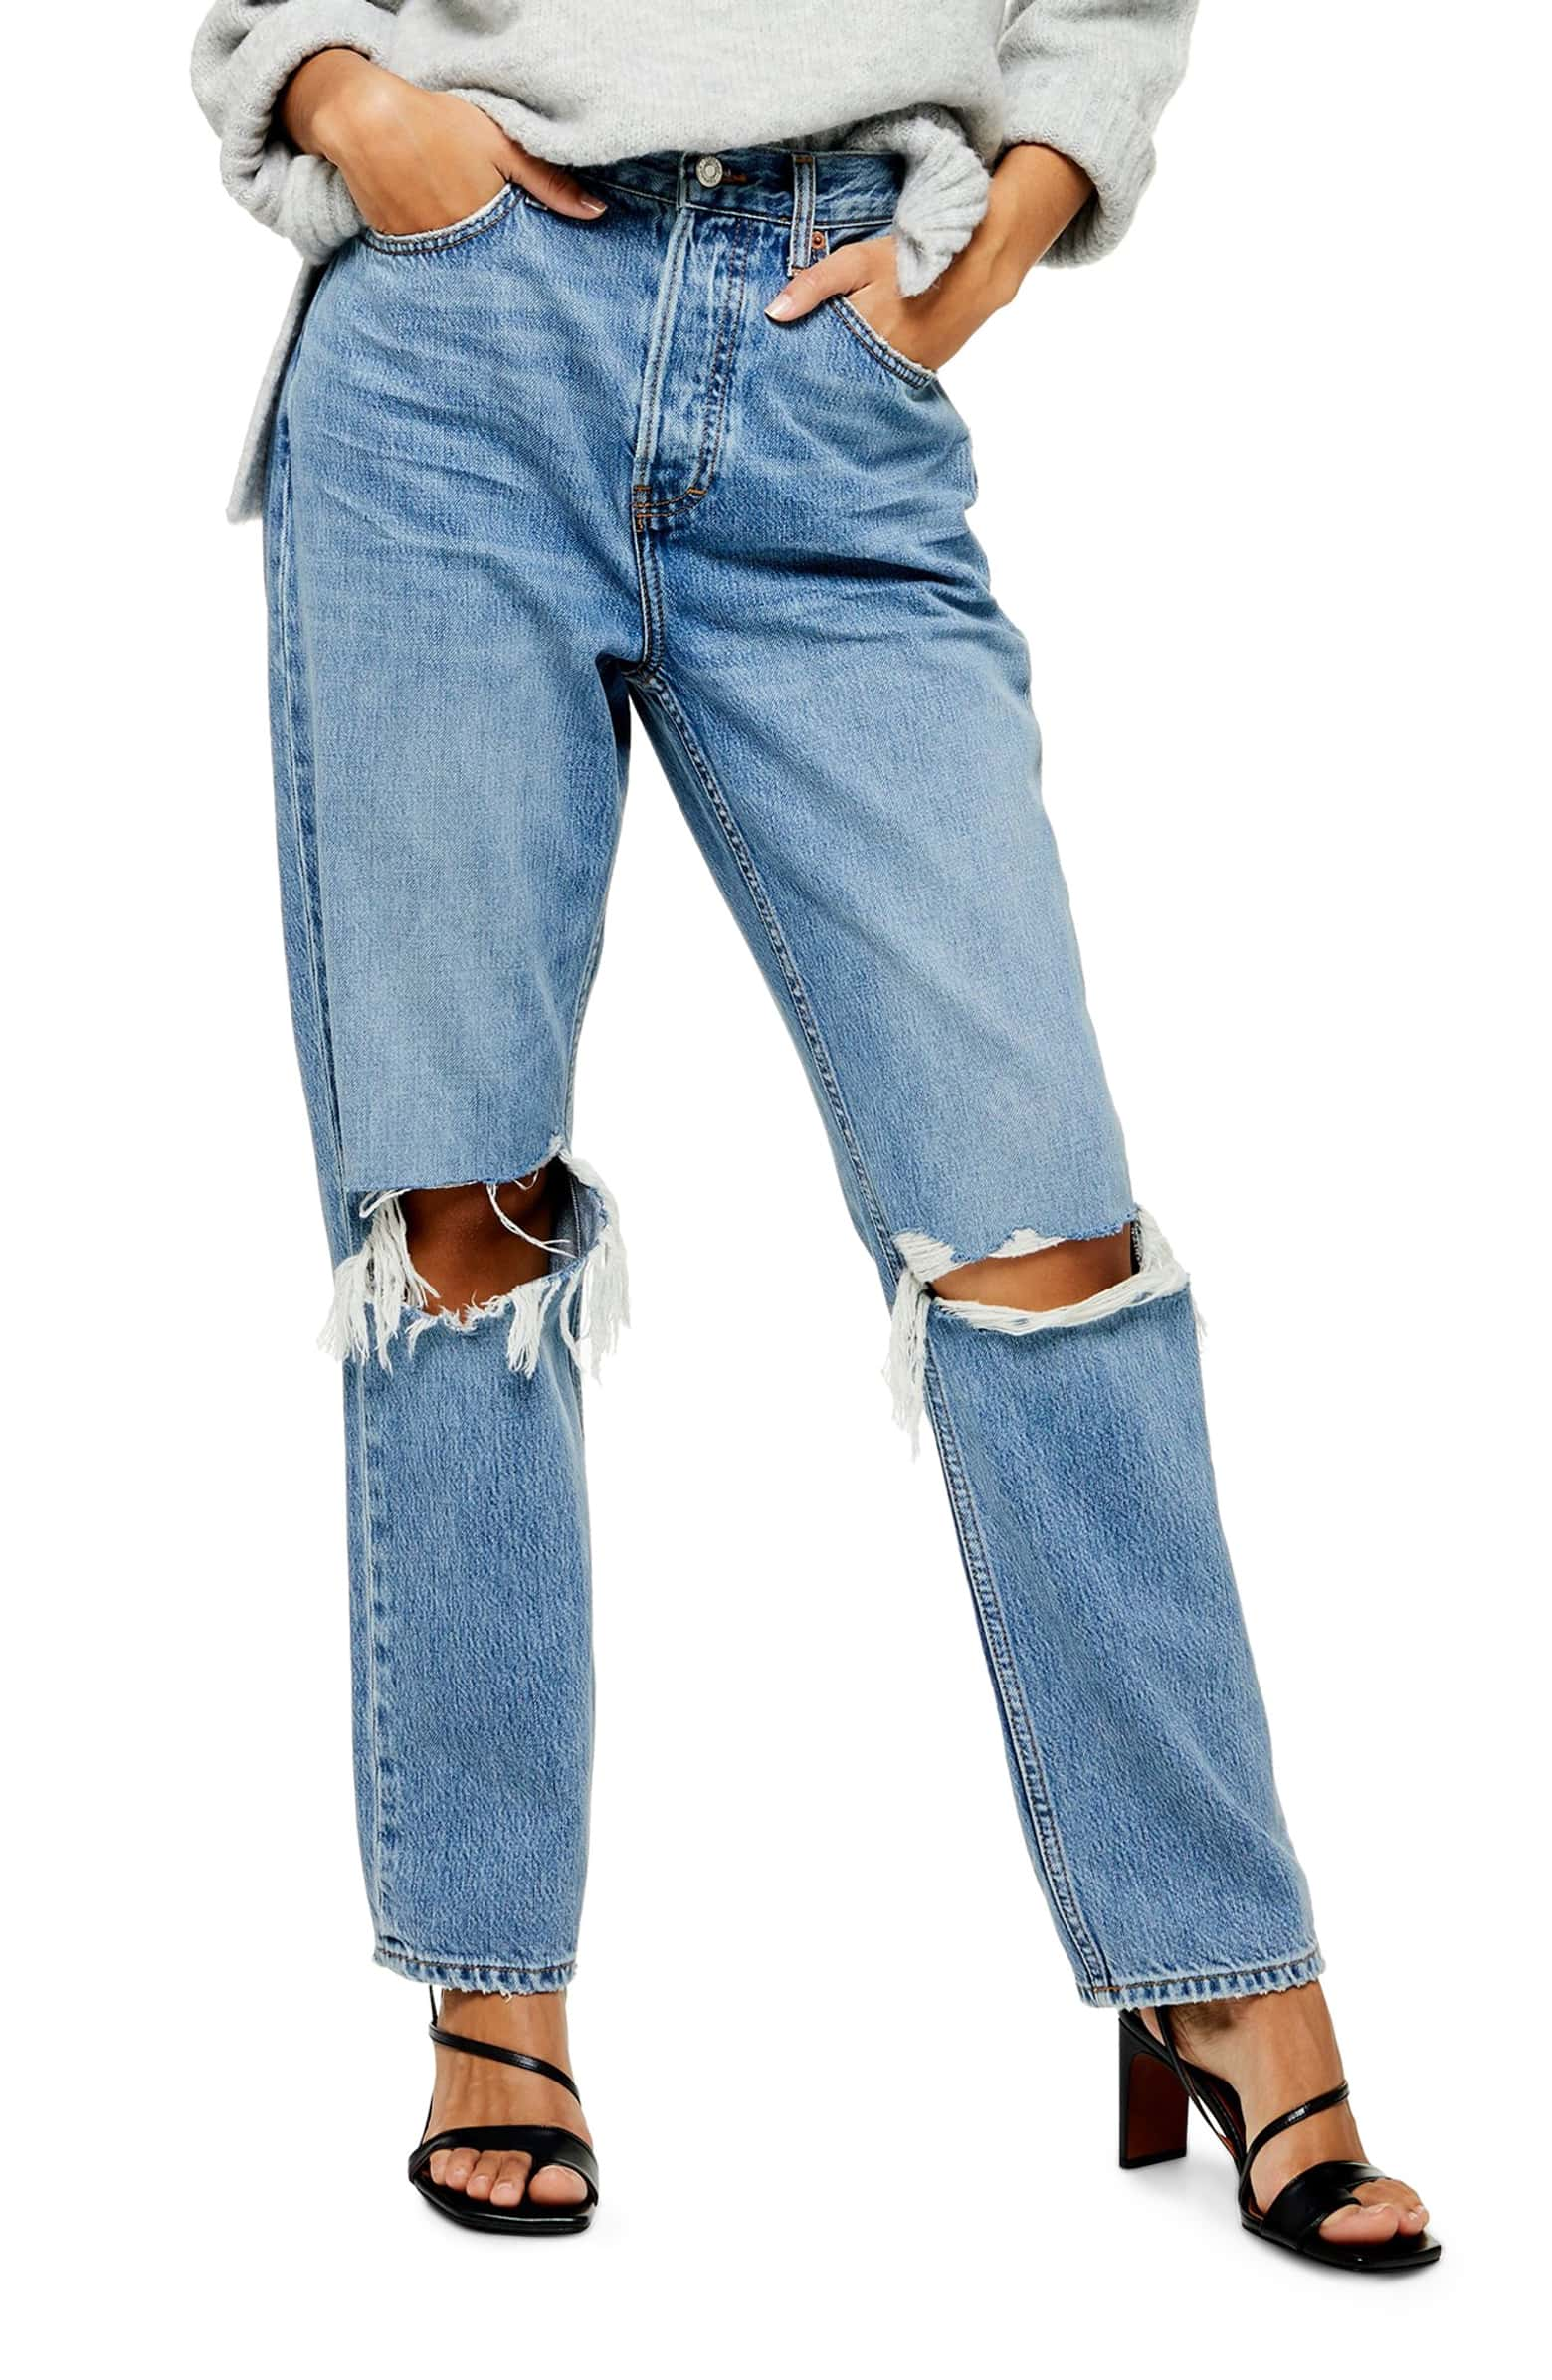 High Waist Jeans - SALE: $52.90, after sale: $80